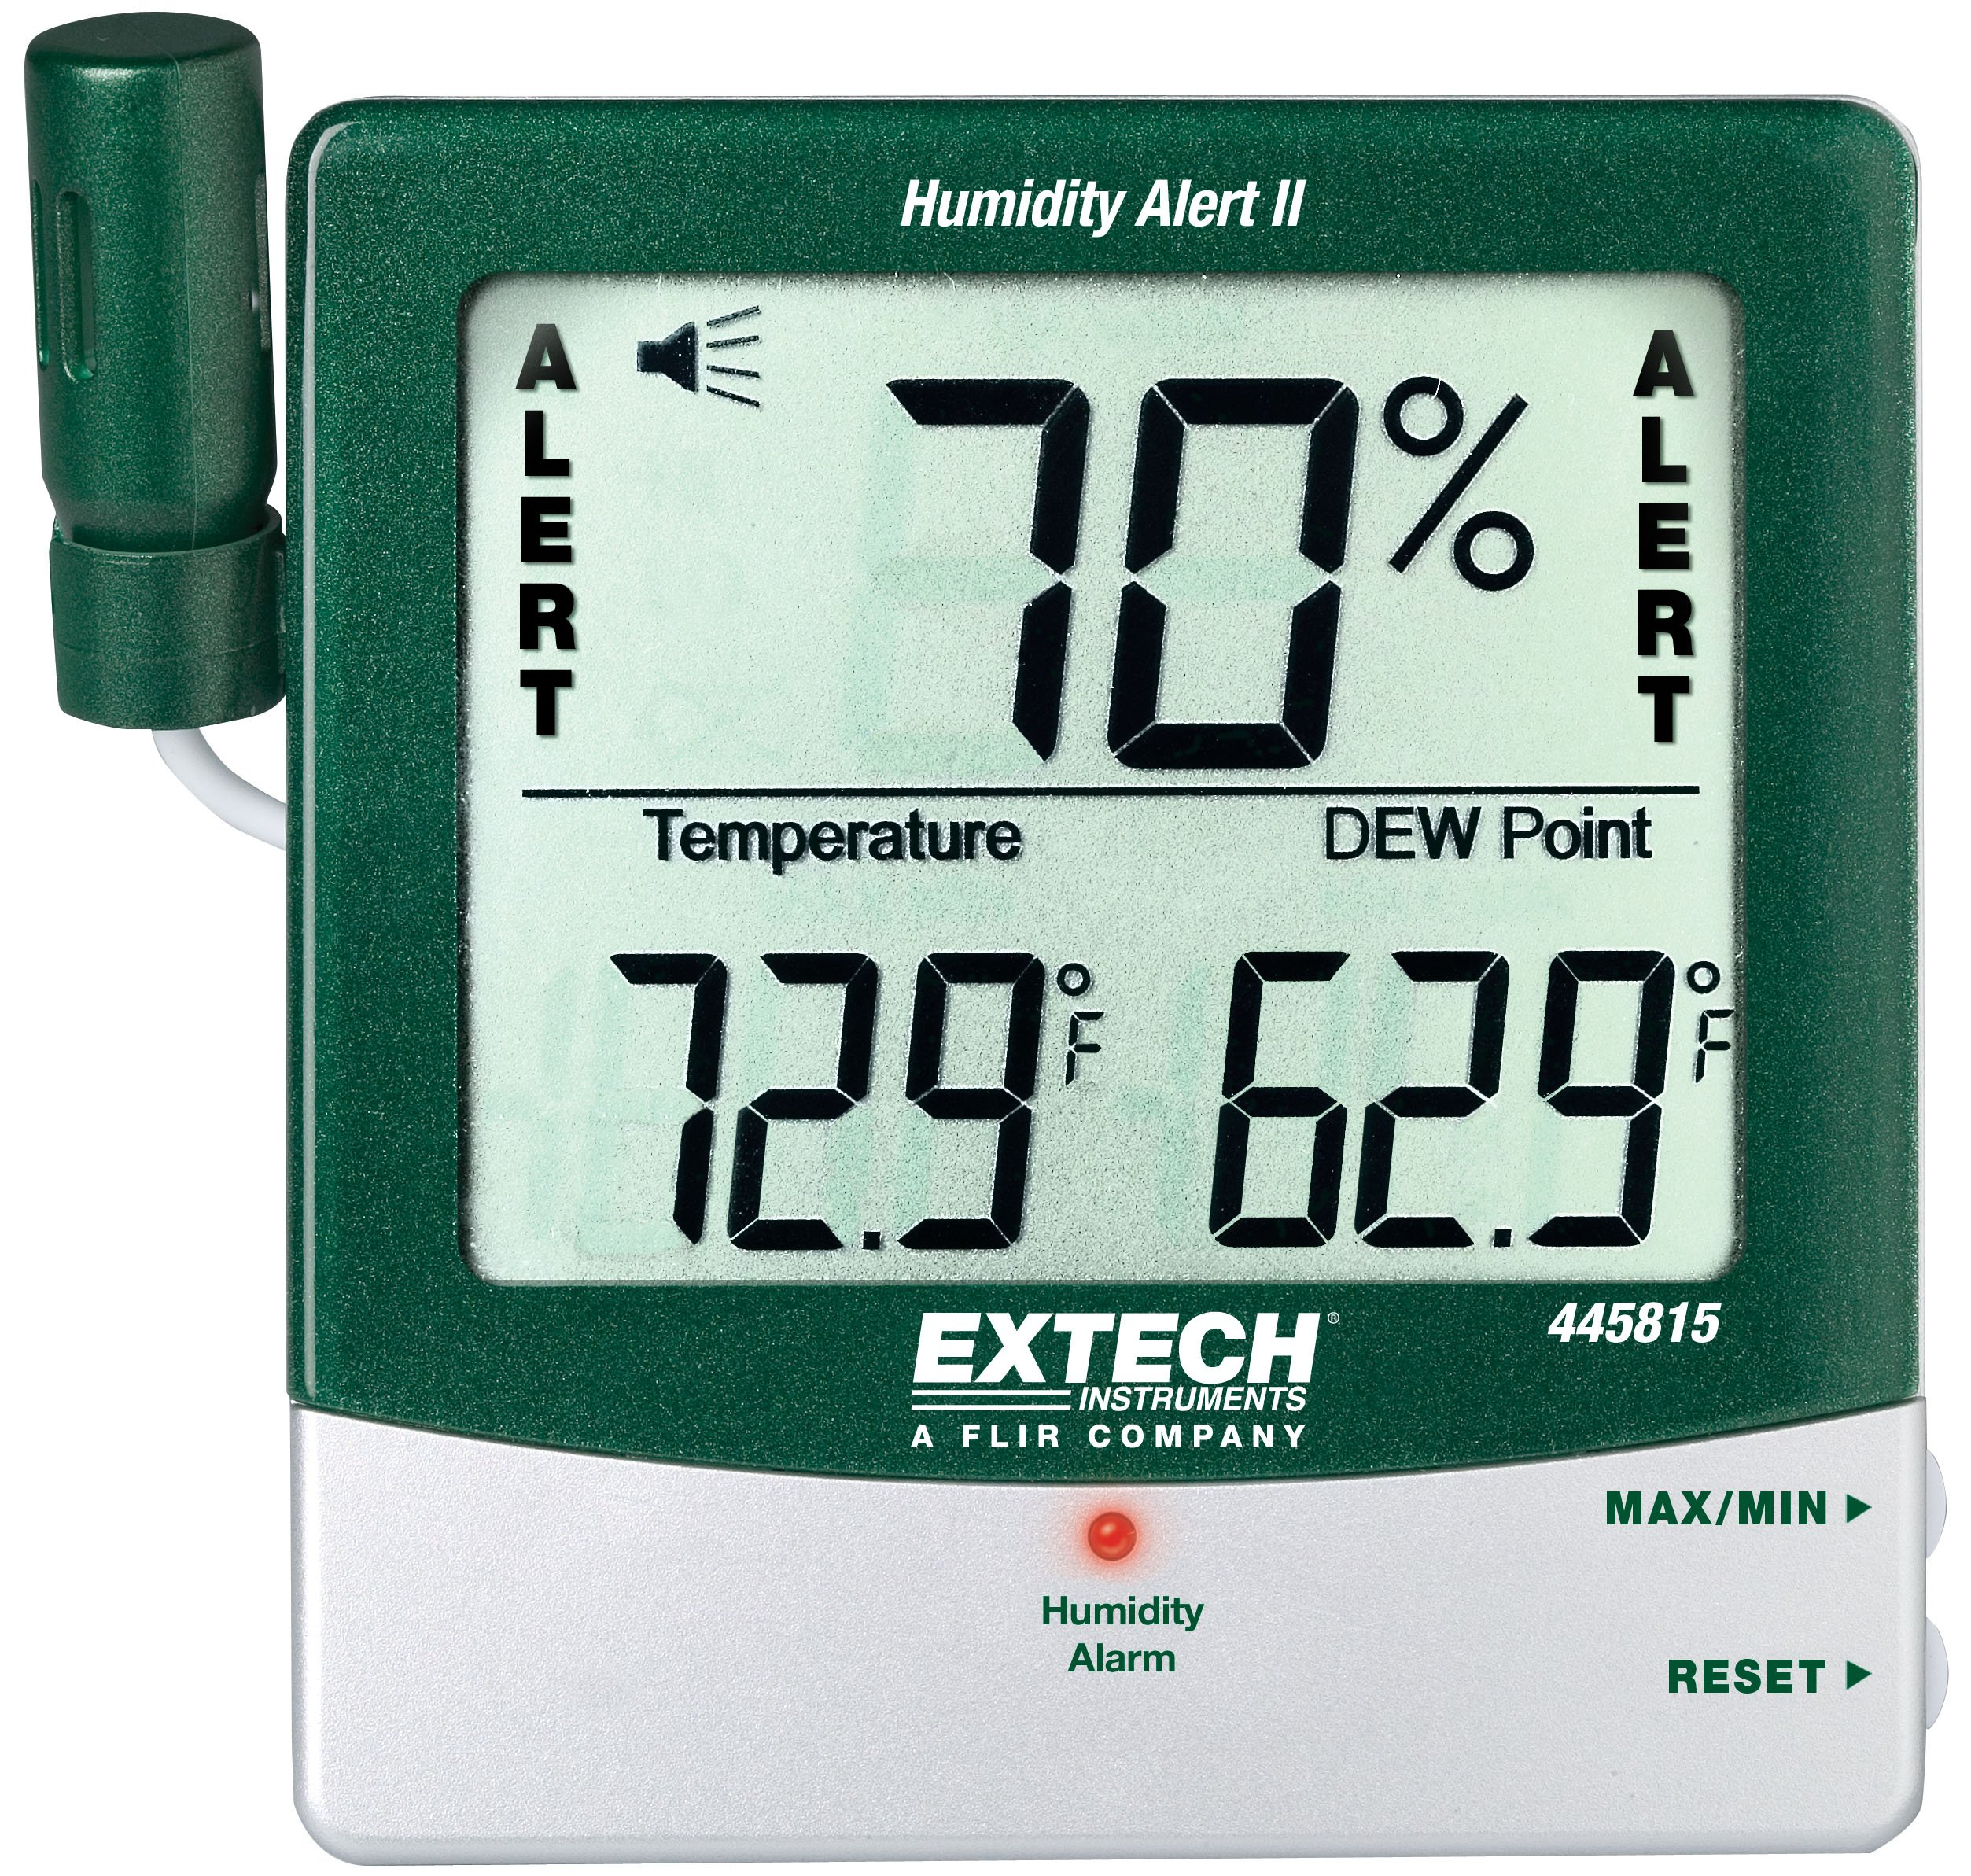 Extech 445815-NIST Hygro-Thermometer and Humidity Alert with Dew Point and NIST